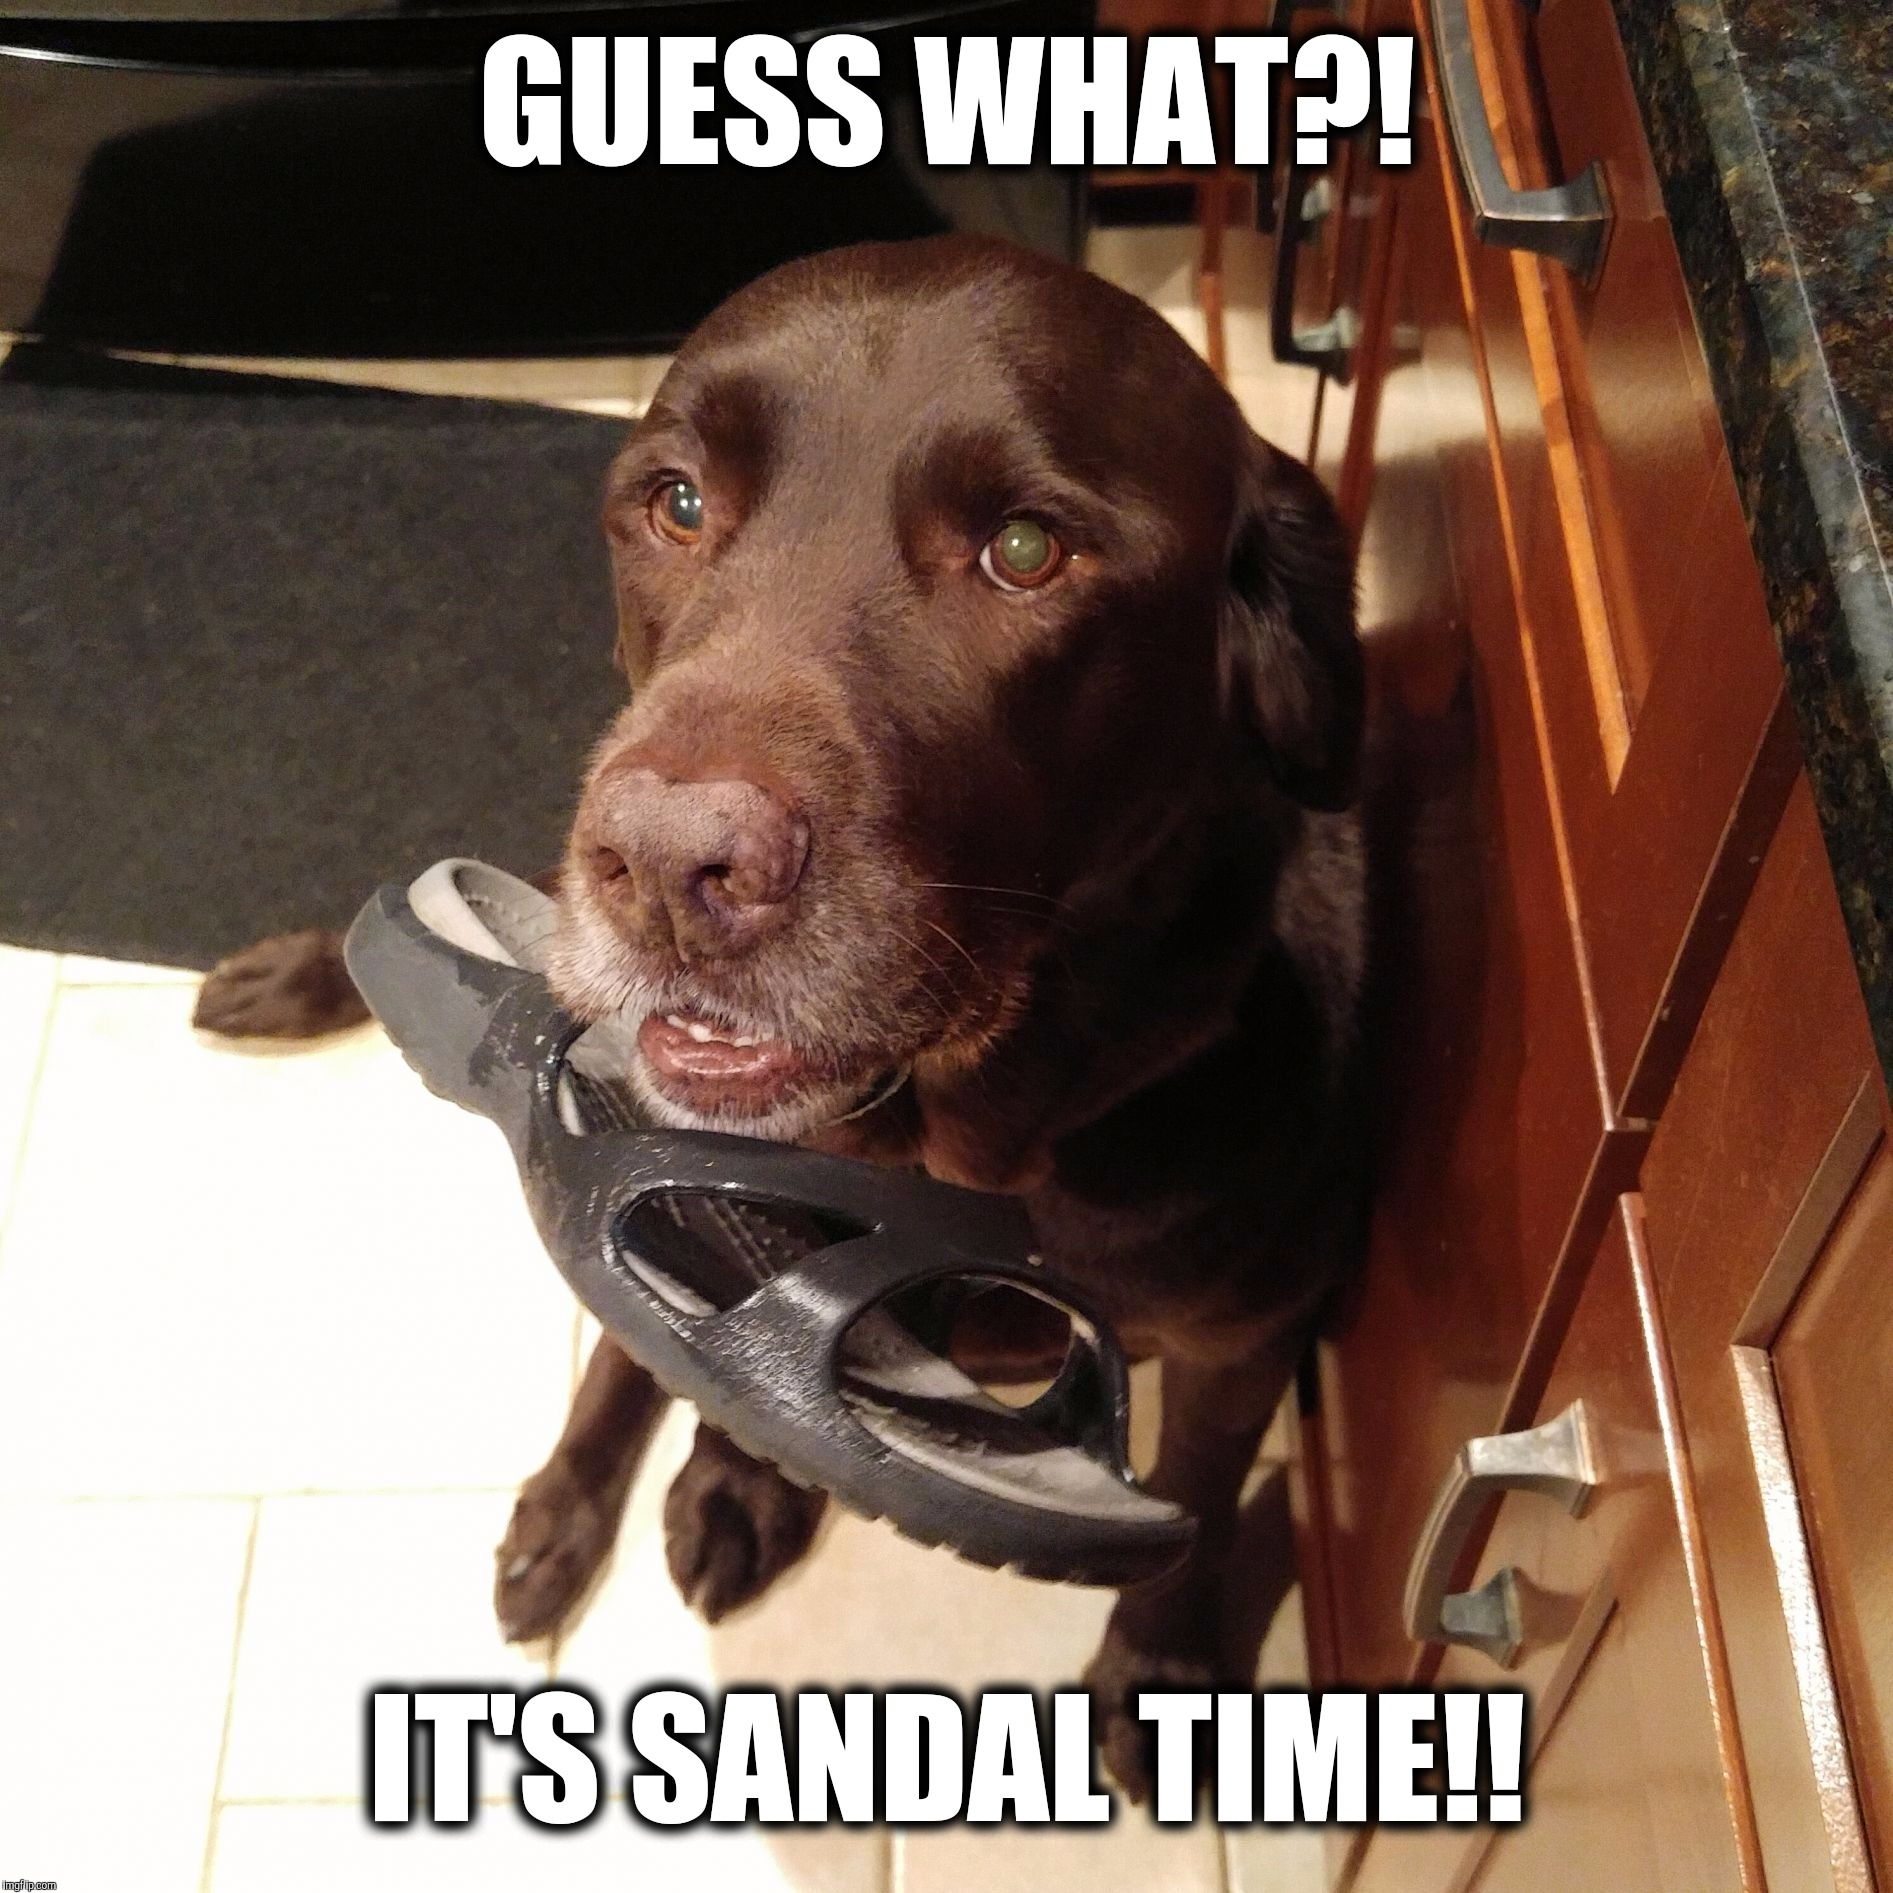 Sandal time | GUESS WHAT?! IT'S SANDAL TIME!! | image tagged in chuckie the chocolate lab,sandals,funny memes,i stole dis,dog,cute | made w/ Imgflip meme maker